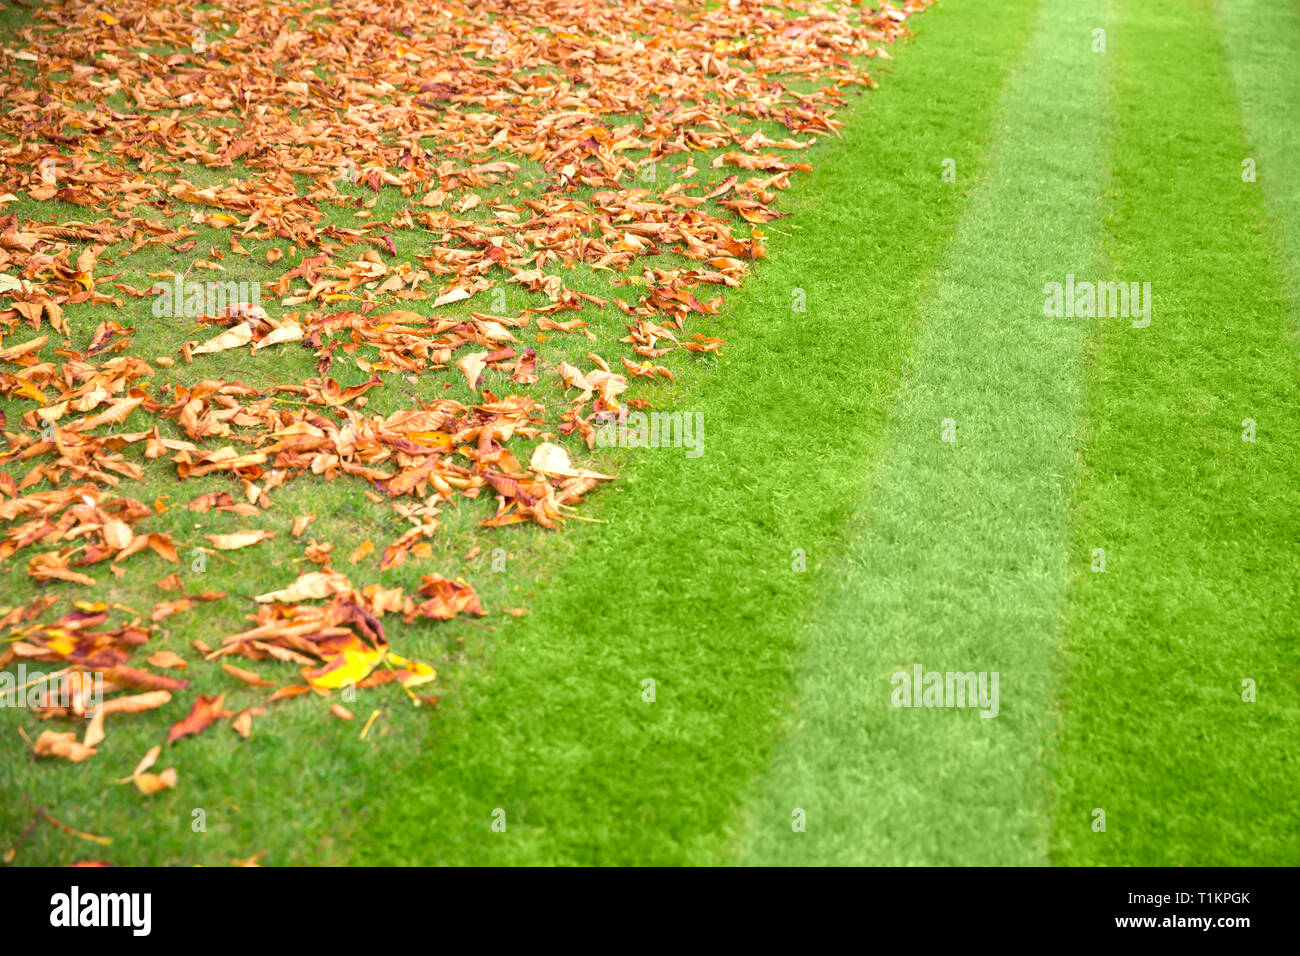 lawn stripes and leaves - Stock Image